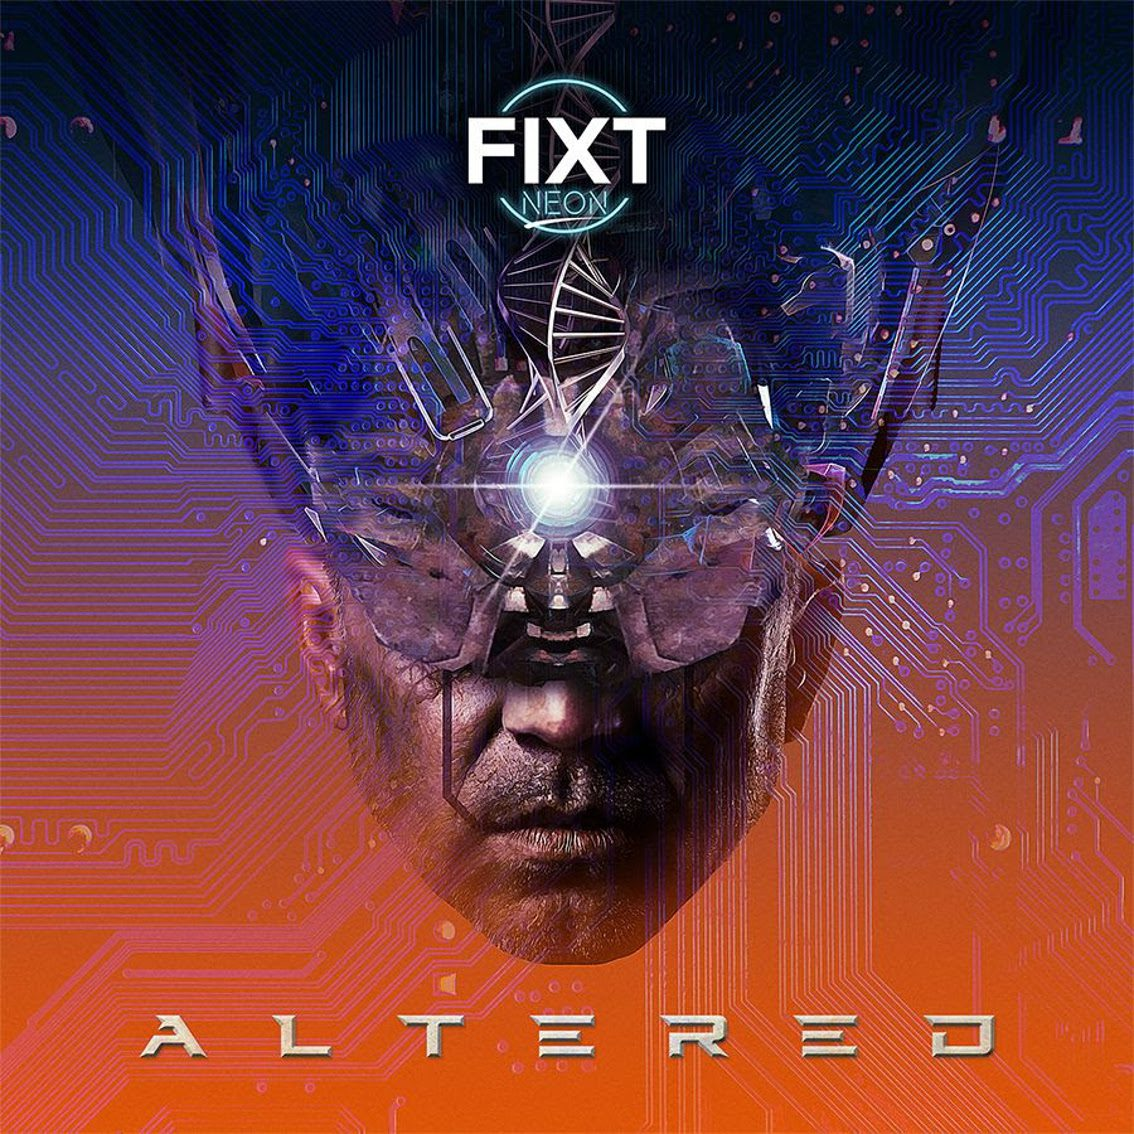 FiXT Neon releases 3rd single from Cyberpunk compilation 'Altered': 'Man Or Machine' (Feat. Megan McDuffee) by Extra Terra